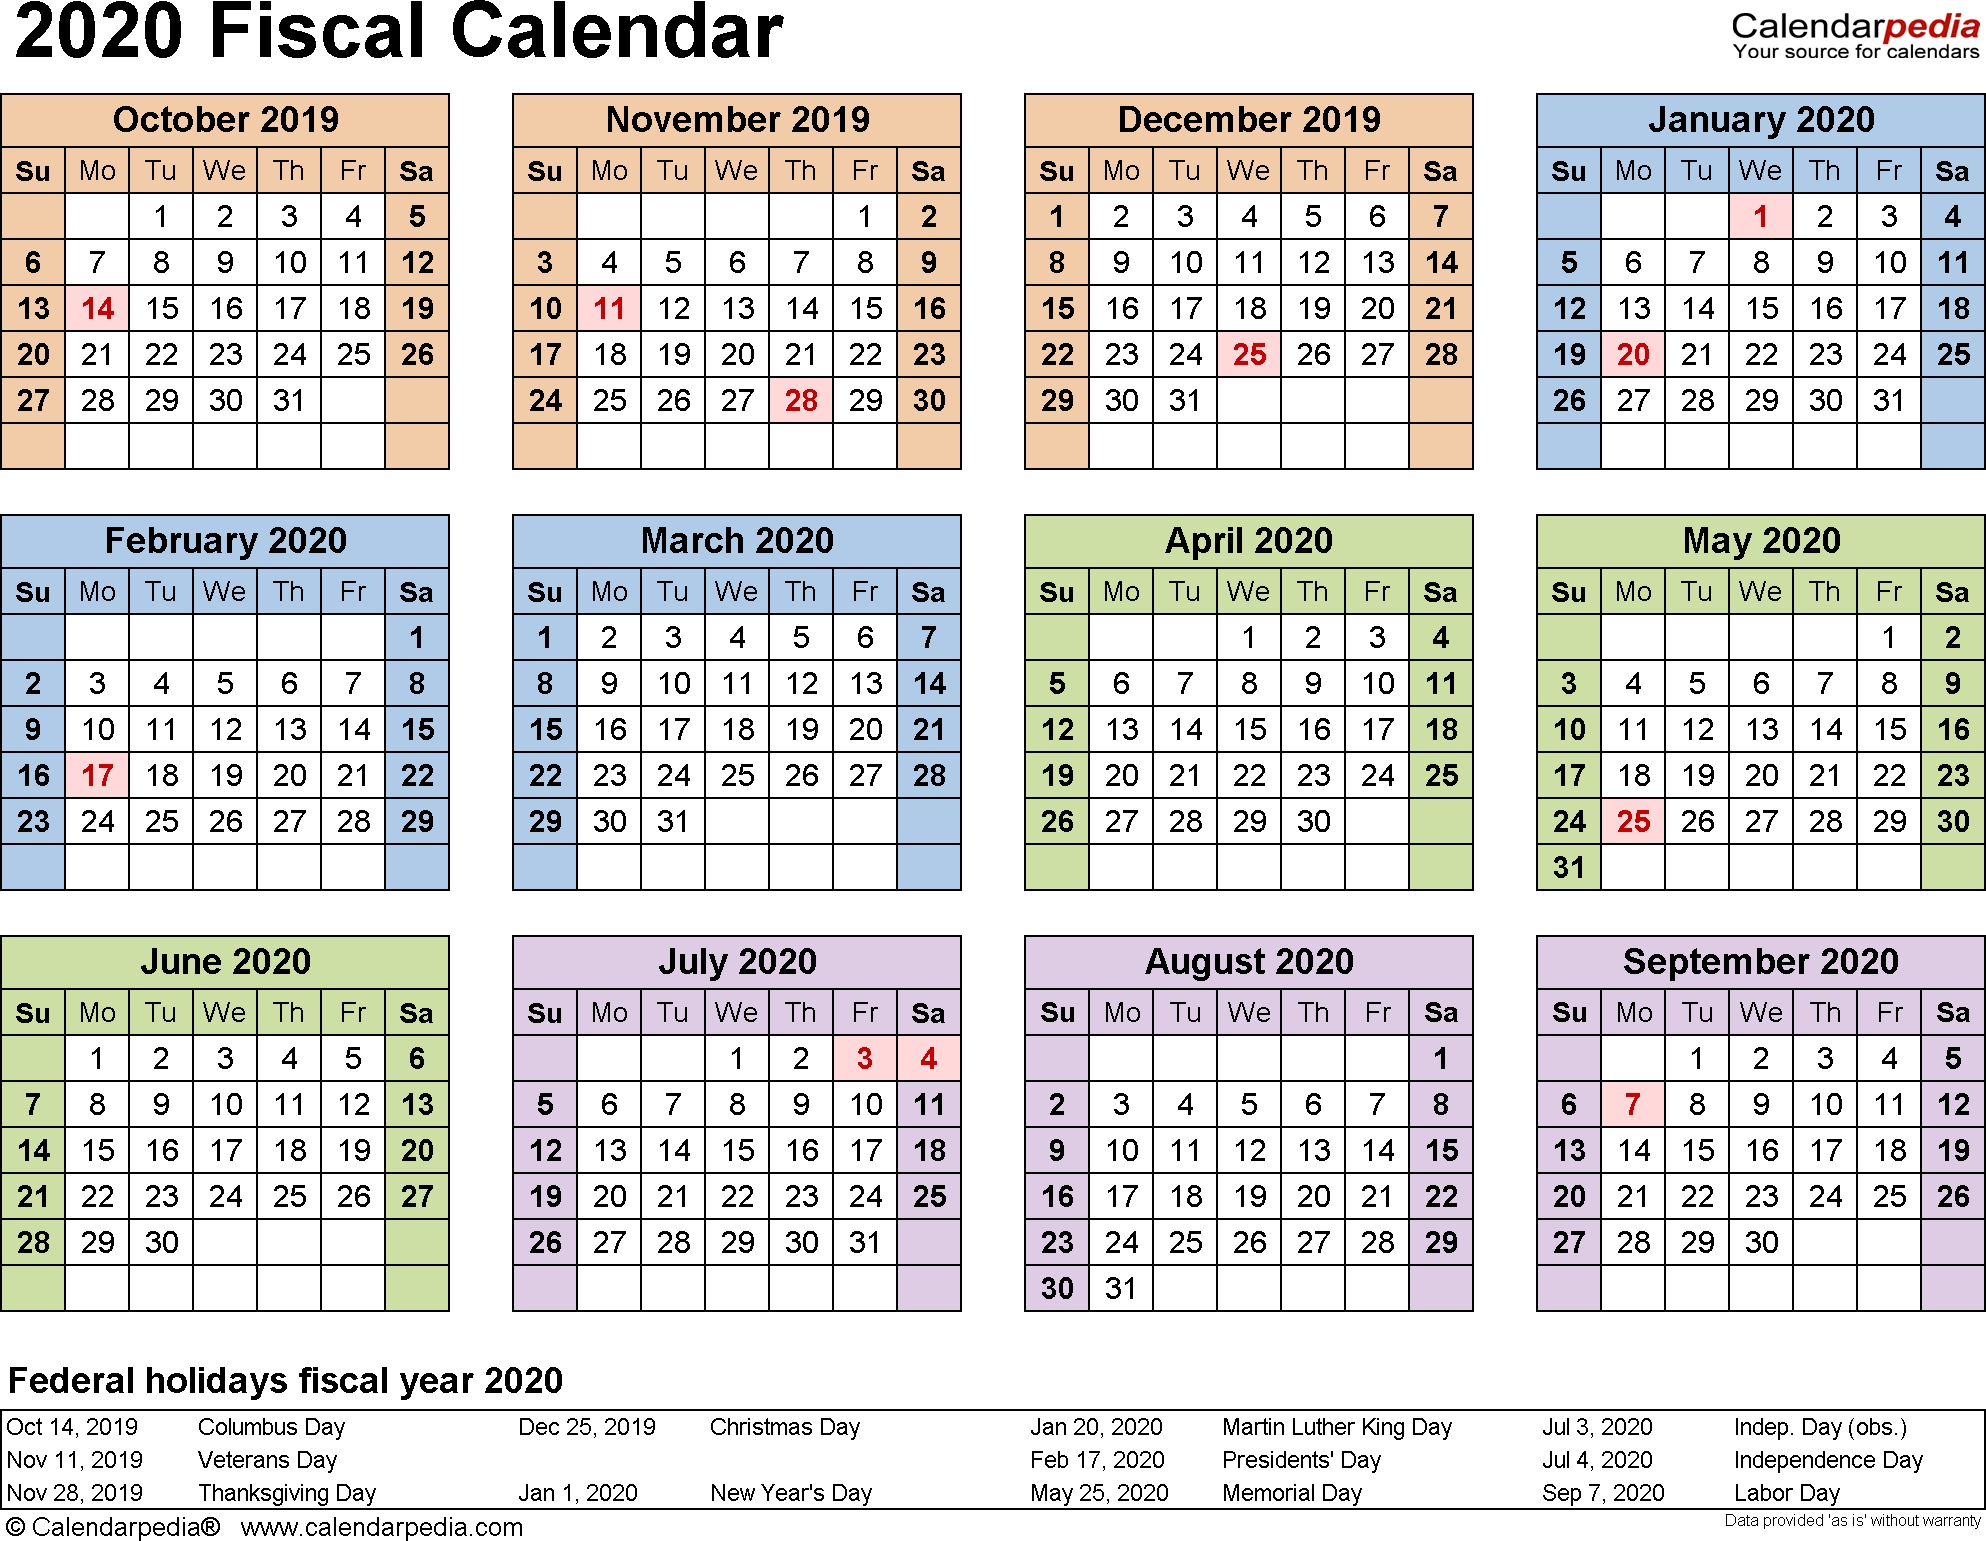 Fiscal Calendars 2020 As Free Printable Pdf Templates for Tax Week Calendars 2019/2020